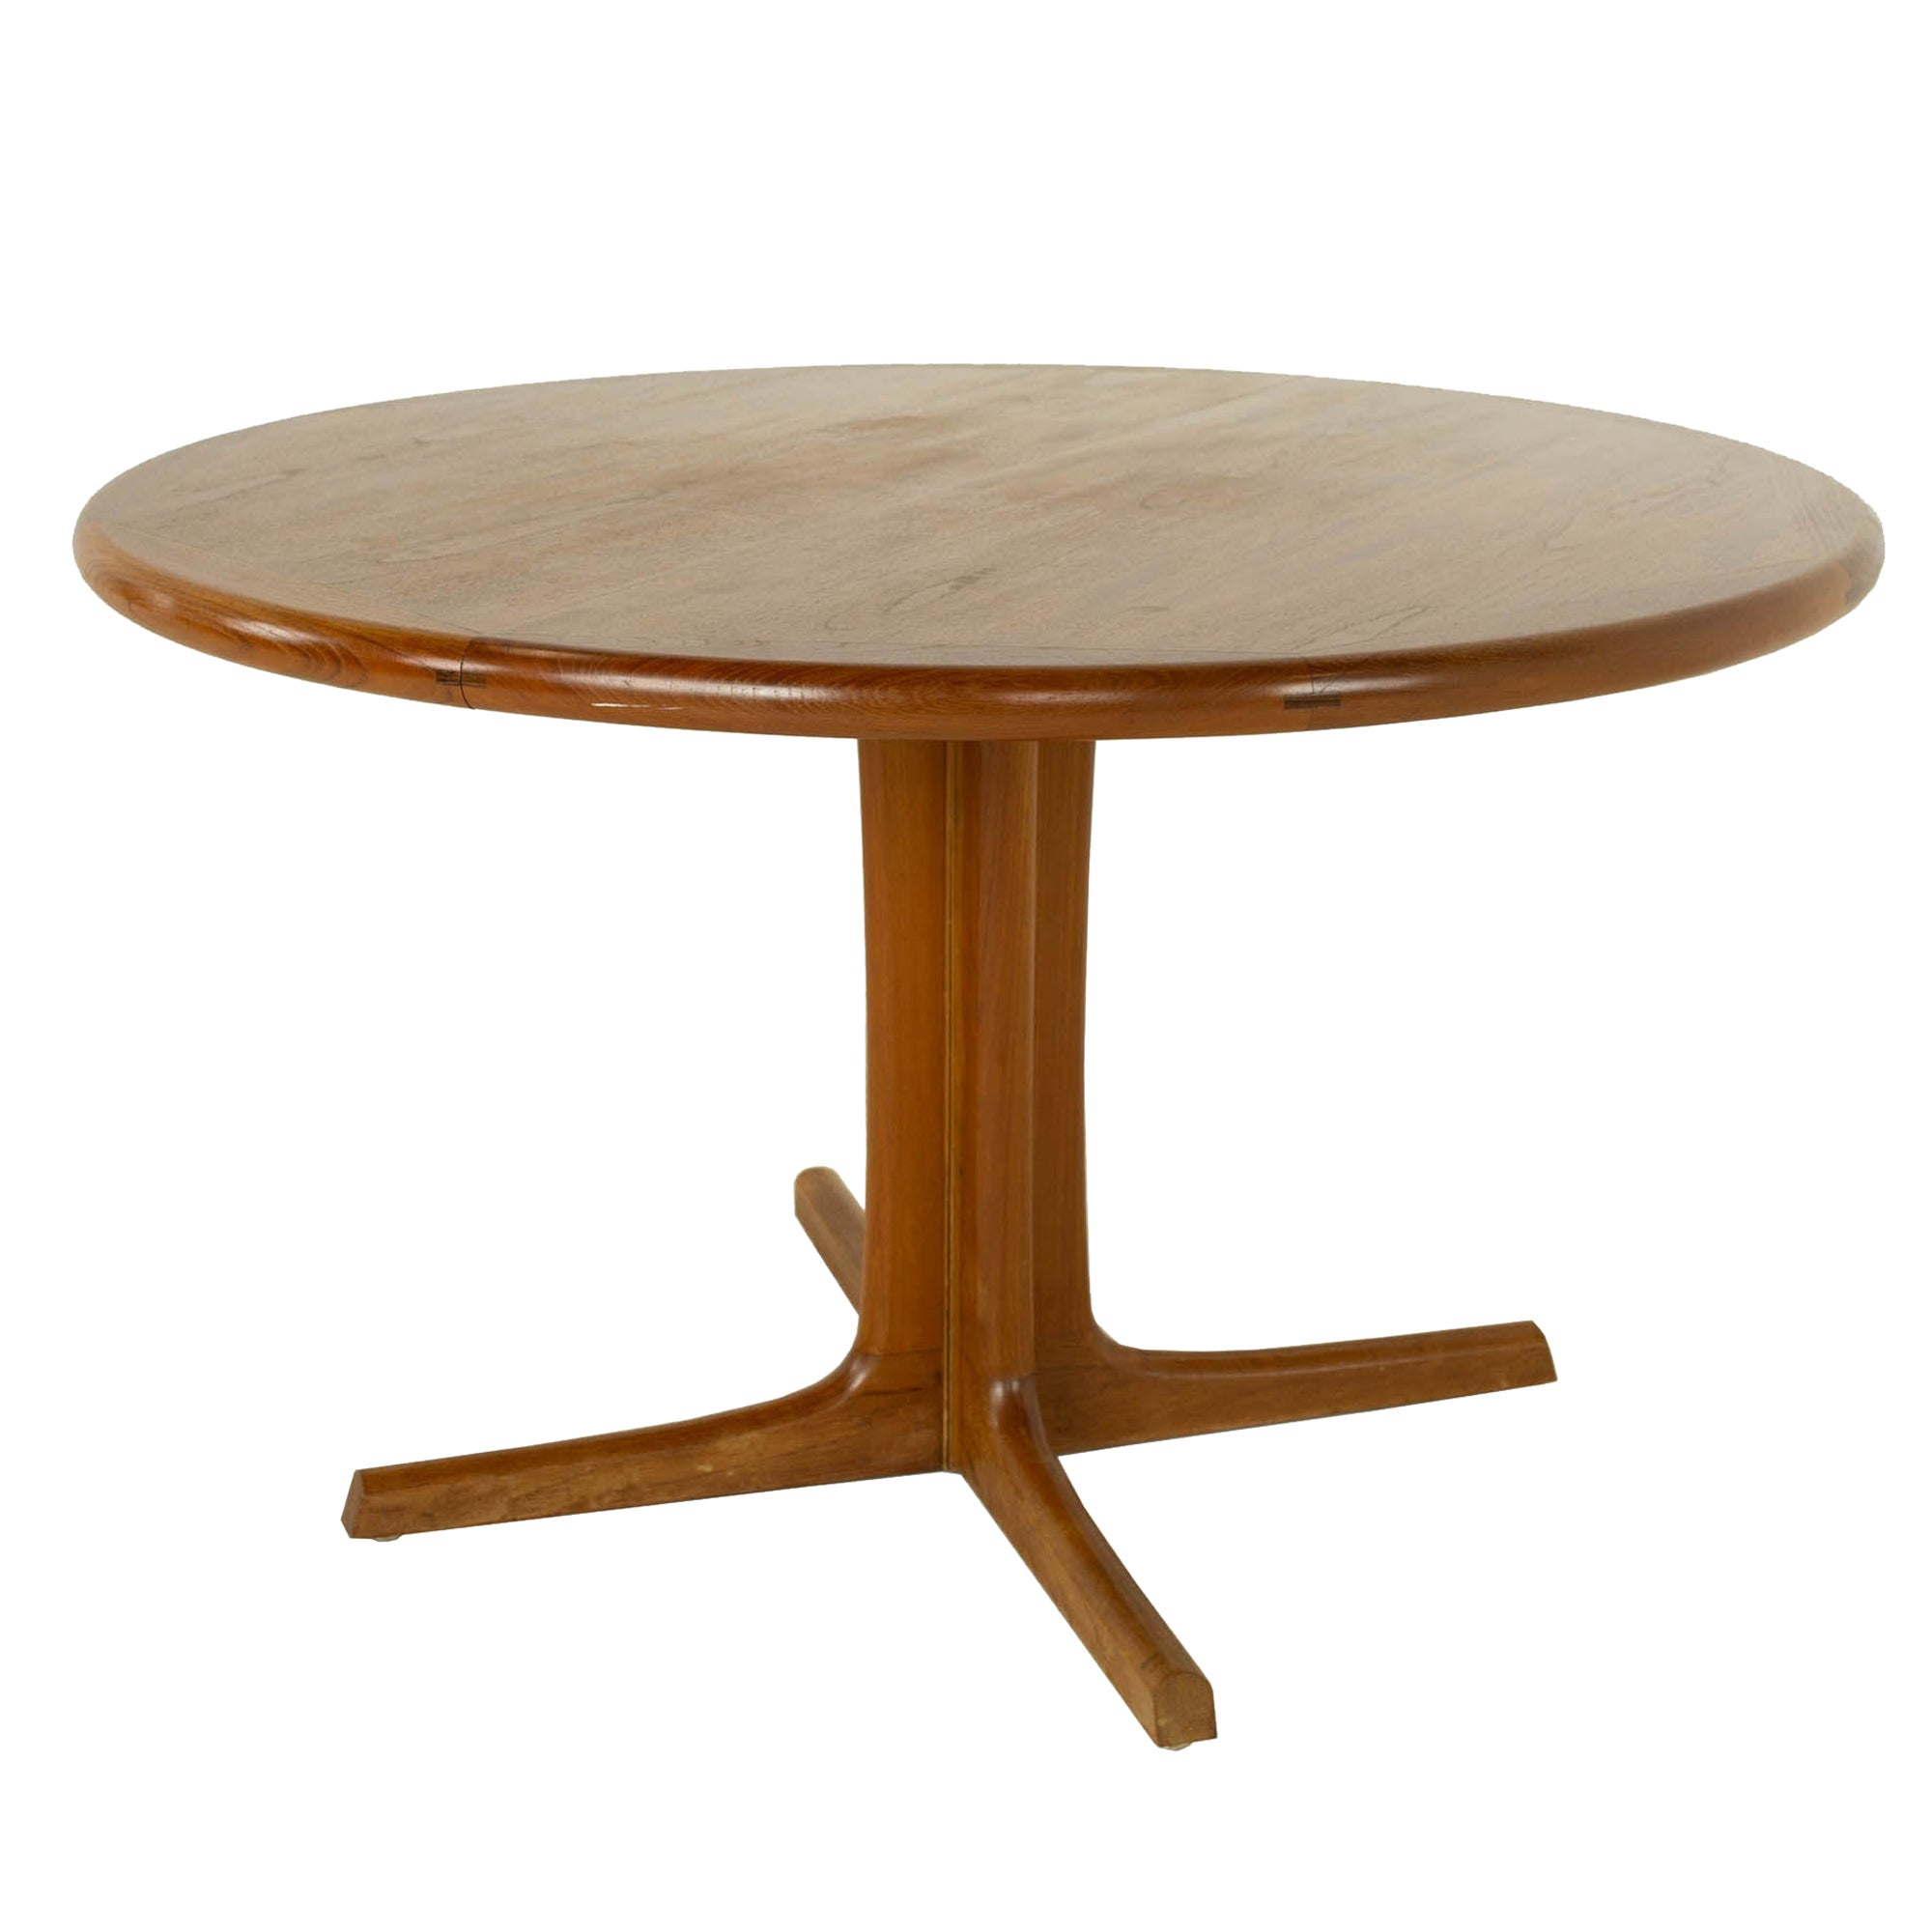 D-Scan Mid Century Teak Round Dining Table, 2 Leaves